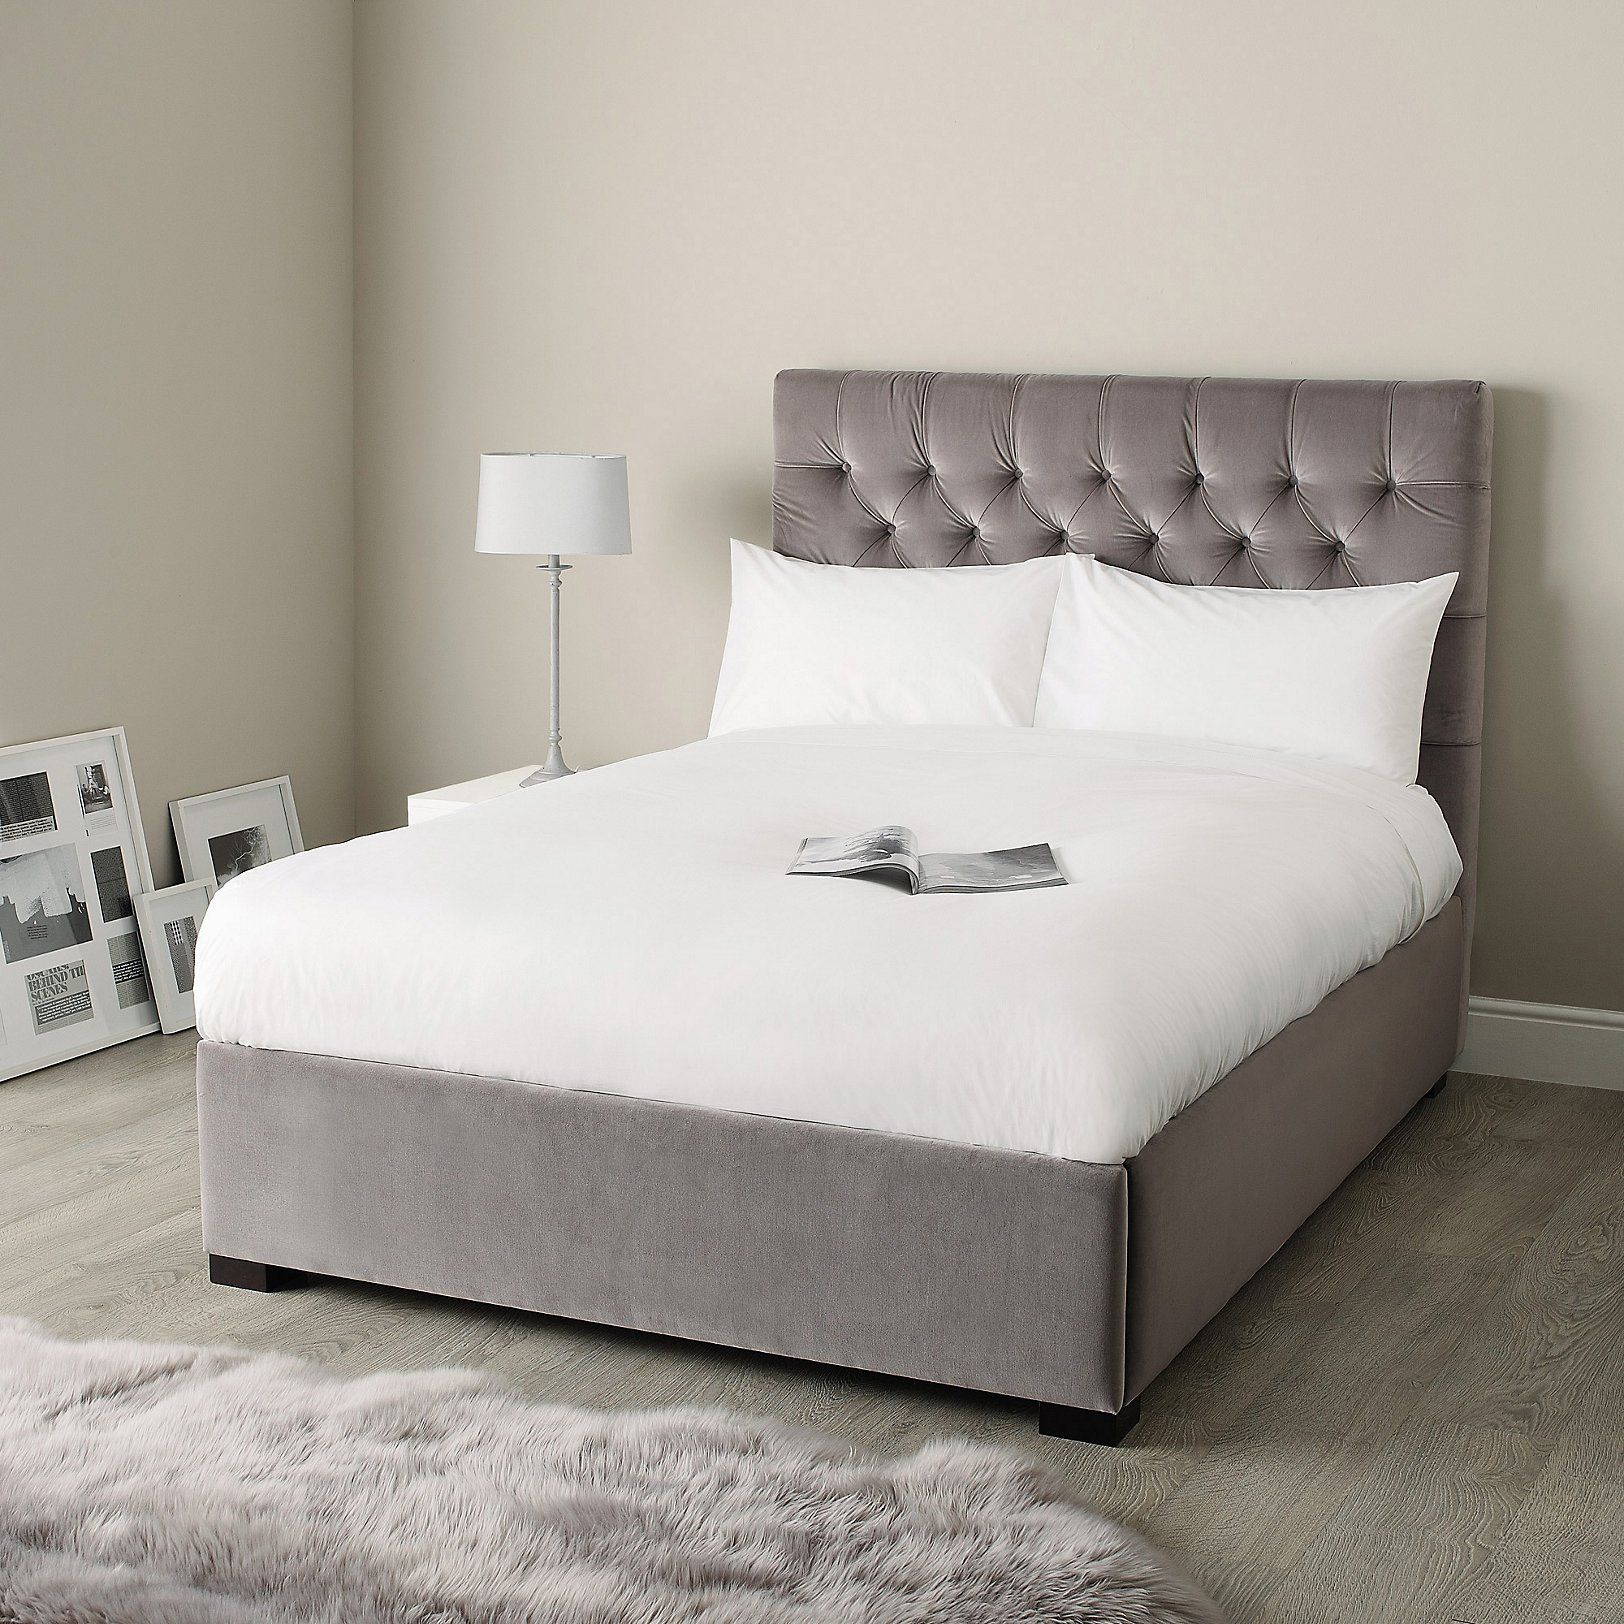 Richmond Bed Velvet | Beds | Furniture | Home | The White Company UK